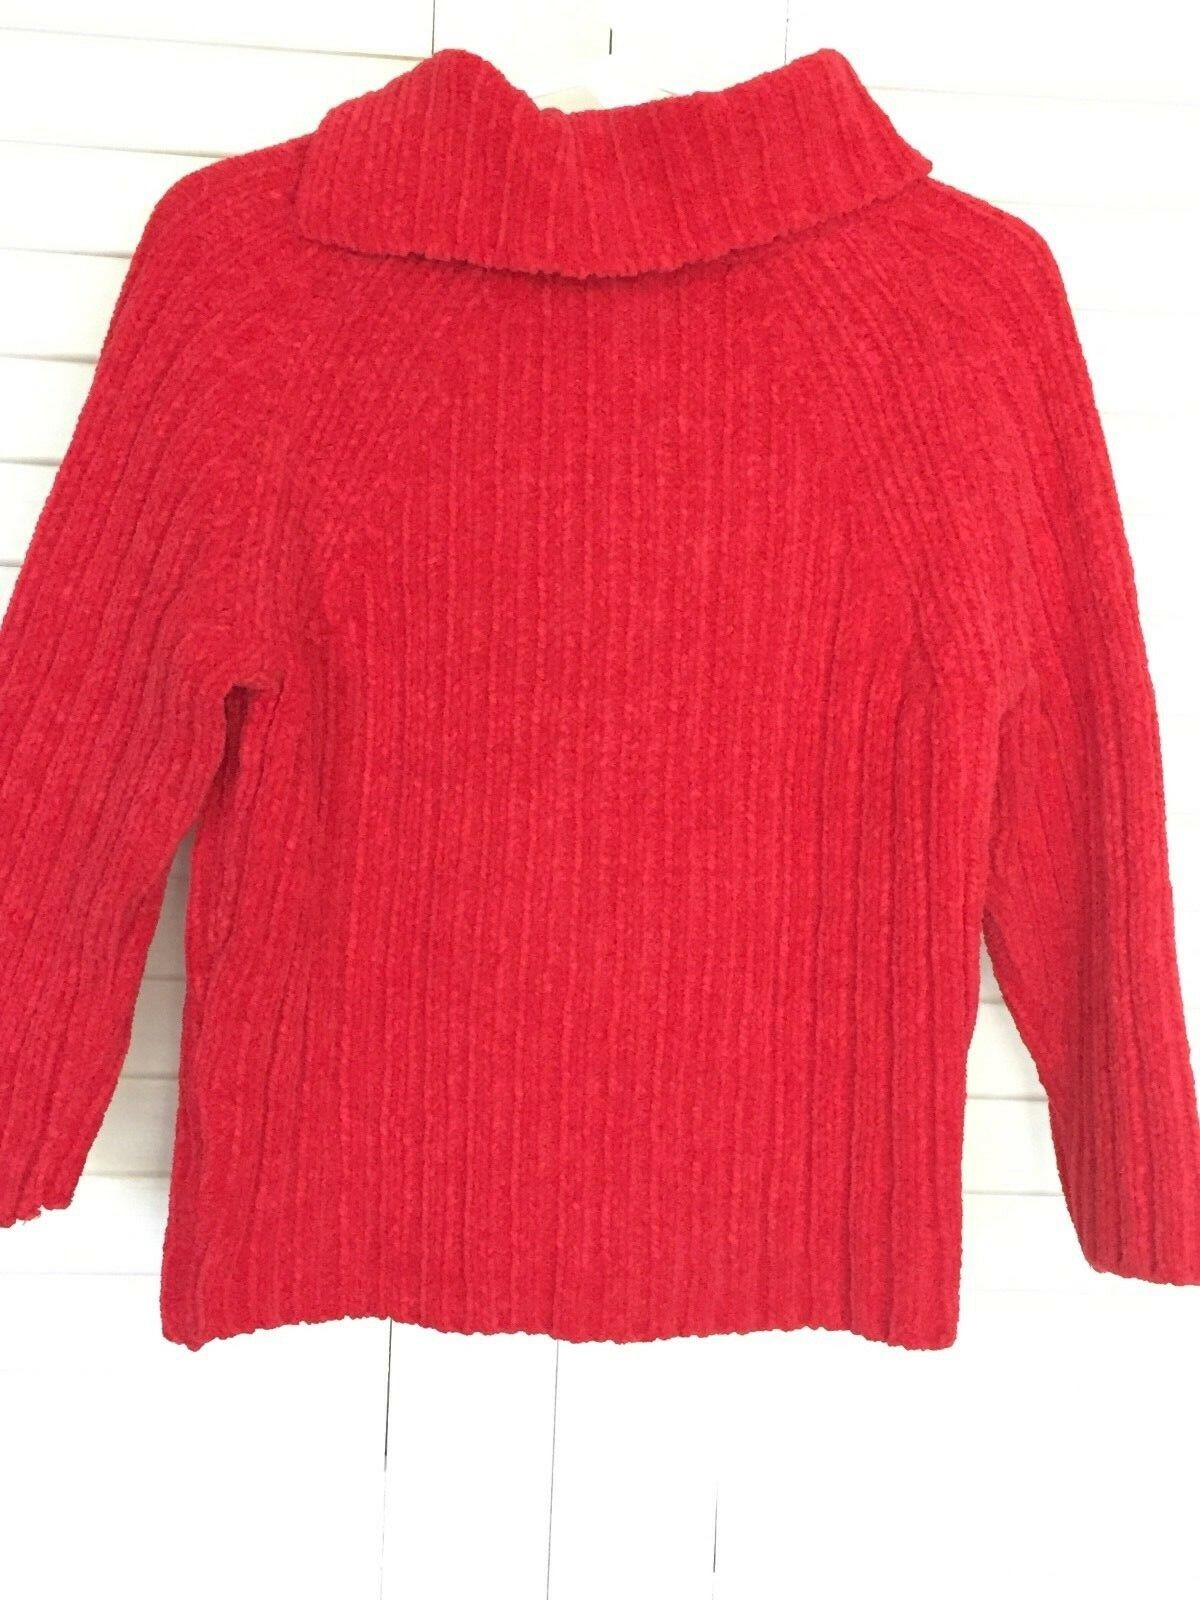 955d62174 Baby Gap Red Chenille Turtleneck Sweater Toddler Girls 3 Yrs for ...